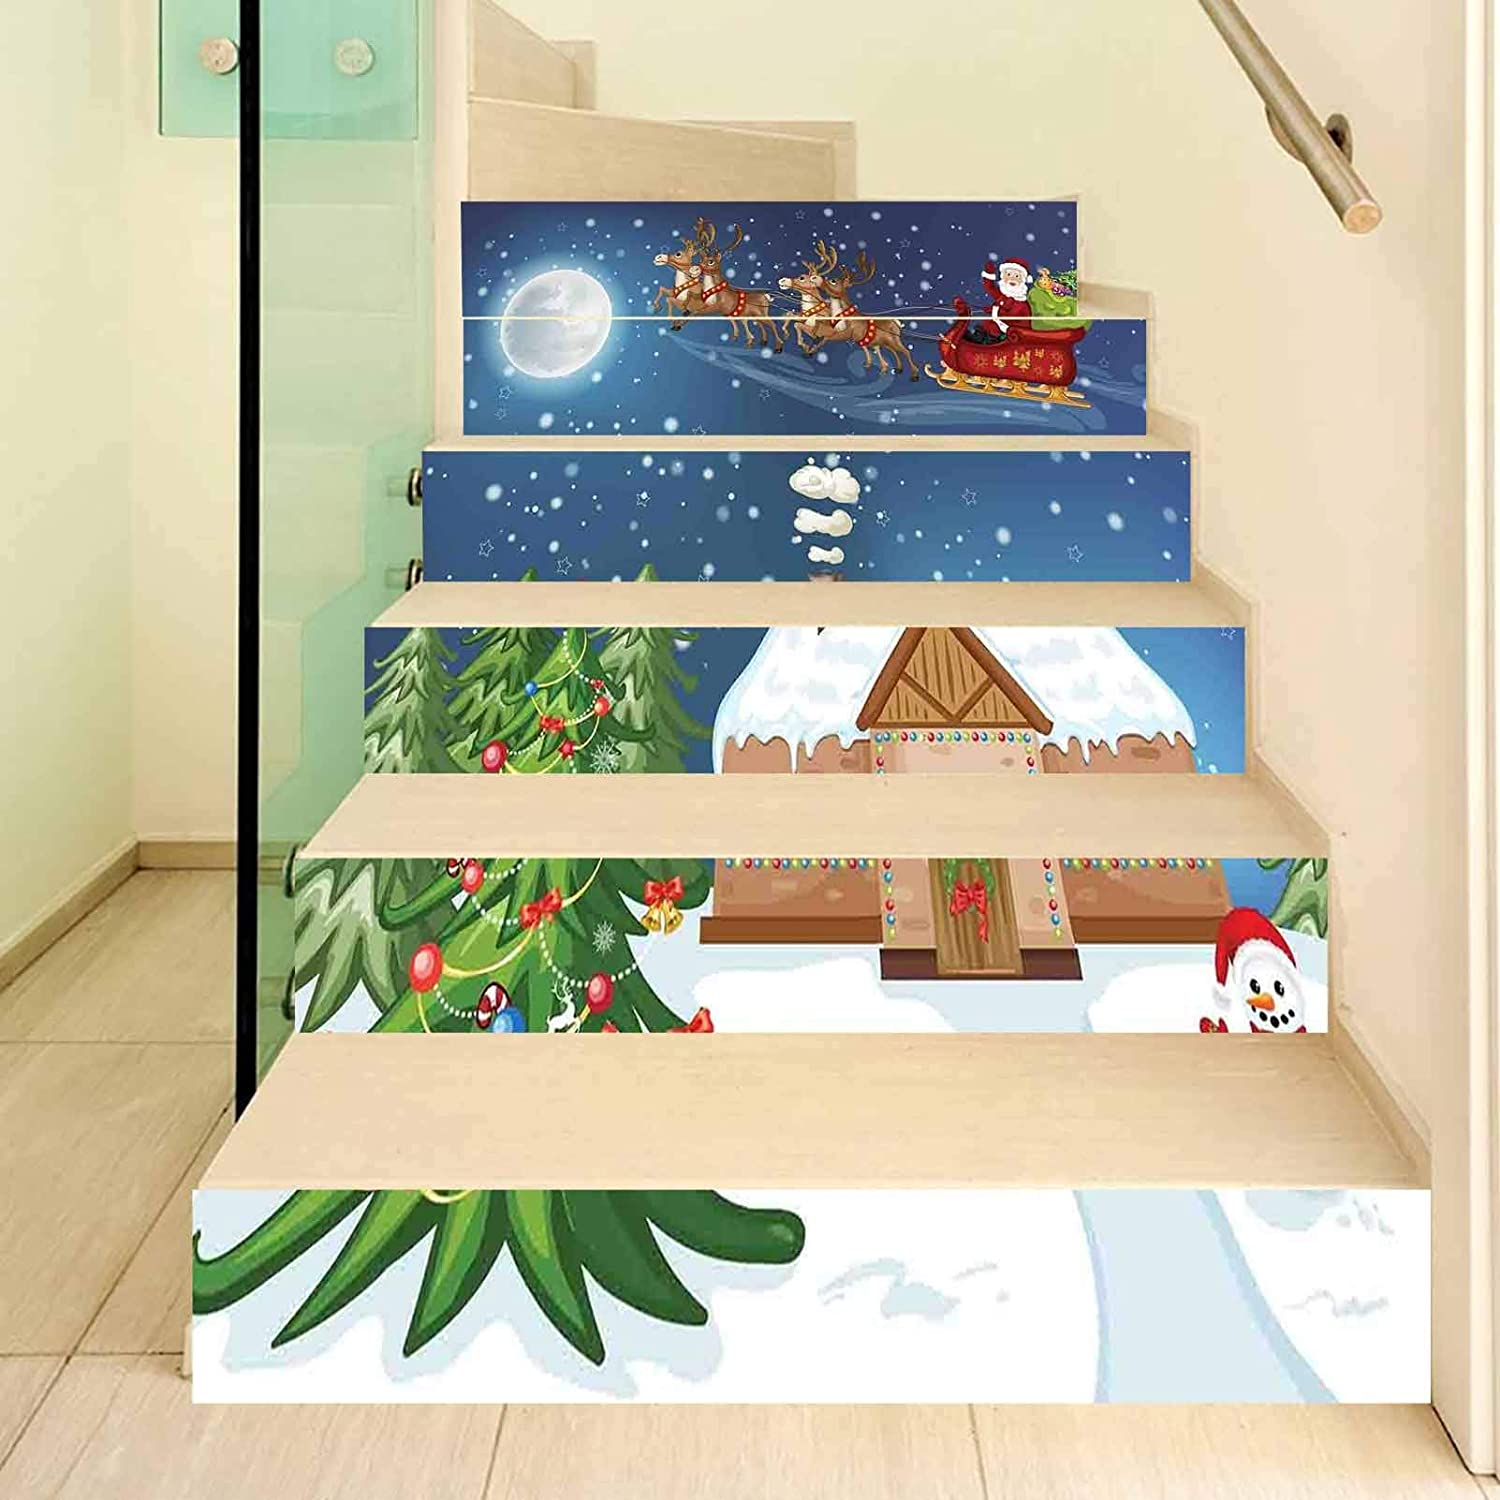 Christmas Decorations 3D Stair Stickers Decals-6Pcs/Set,Classic Eve Scene Santa Delivering Gift with Rudolf the Red Nosed Reindeer Stair Risers Stickers Removable Staircase Decals Mural Wallpaper for